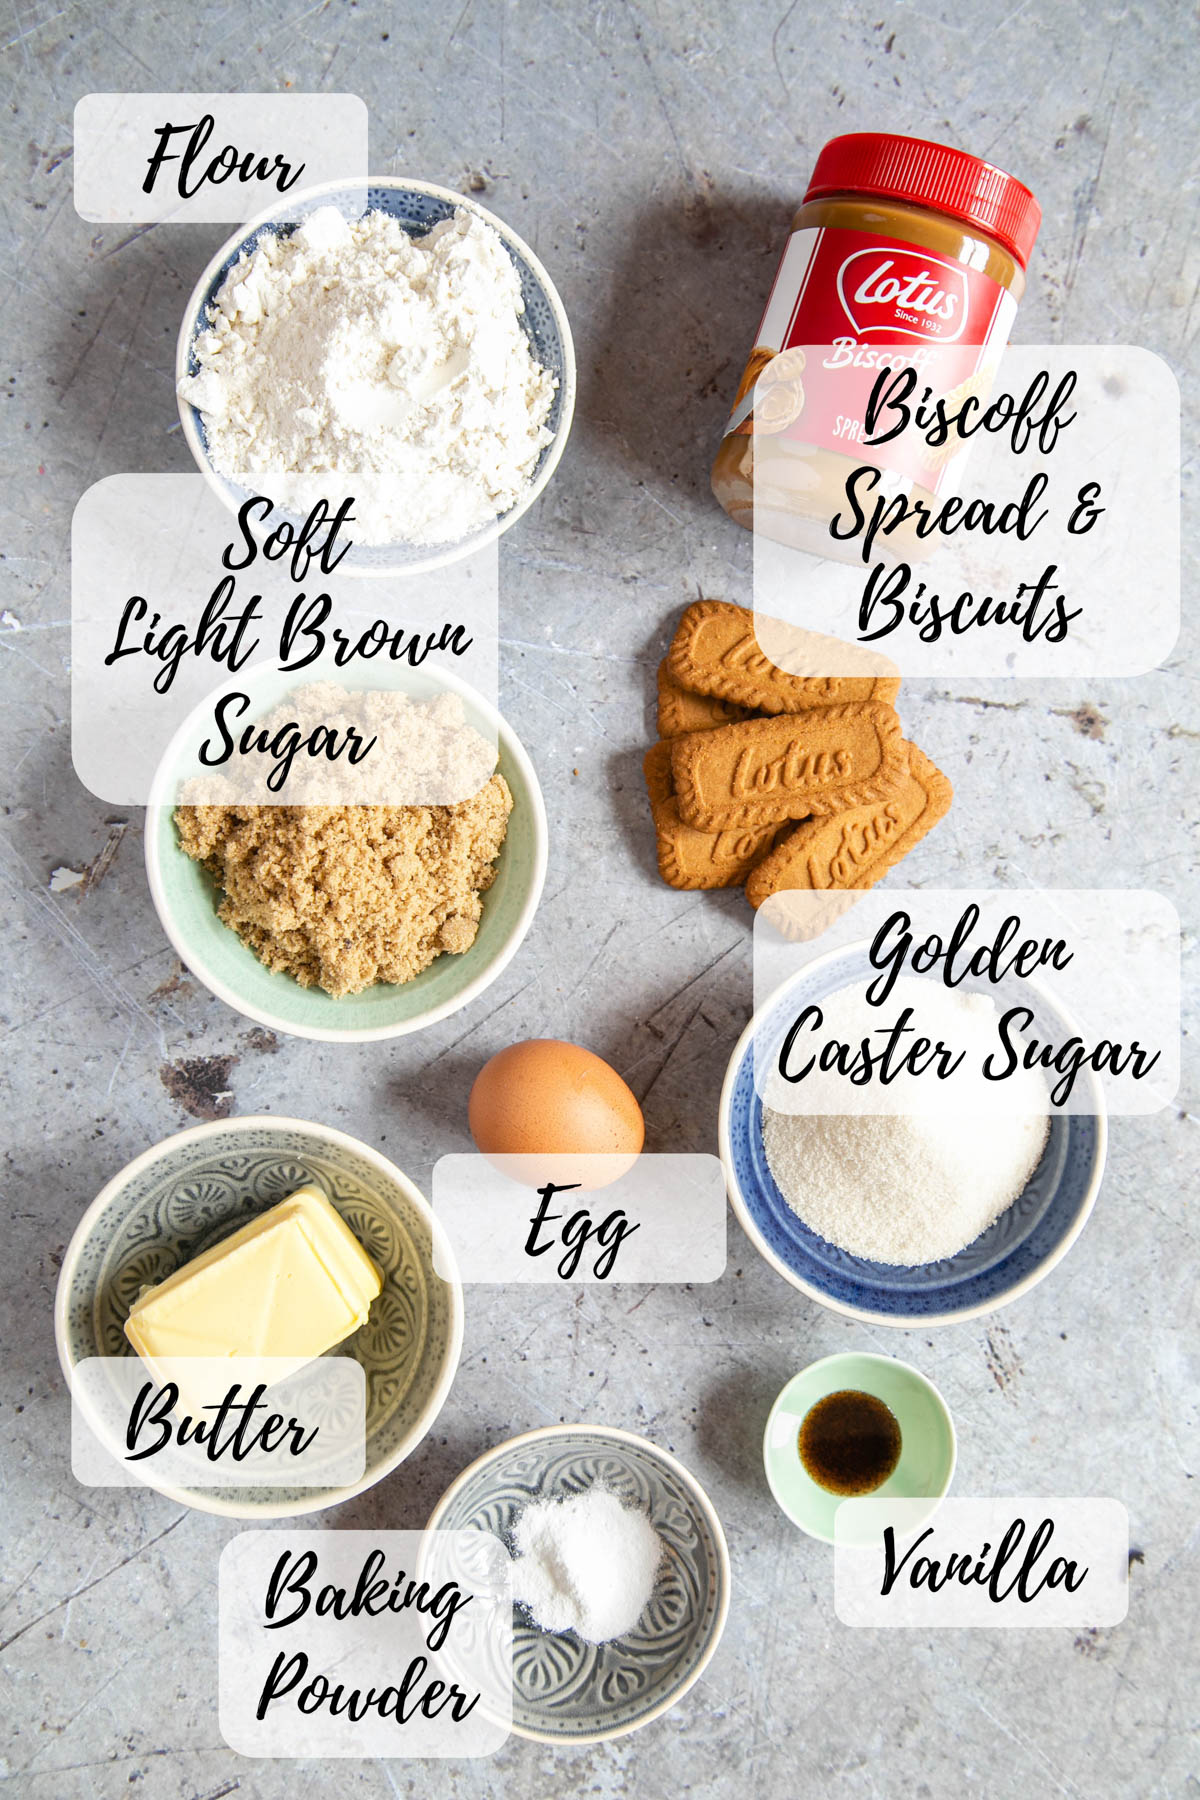 An annotated picture of ingredients for Biscoff spread; flour, Biscoff spread and biscuits, light brown and golden caster sugars, egg, butter, vanilla extract, baking powder.